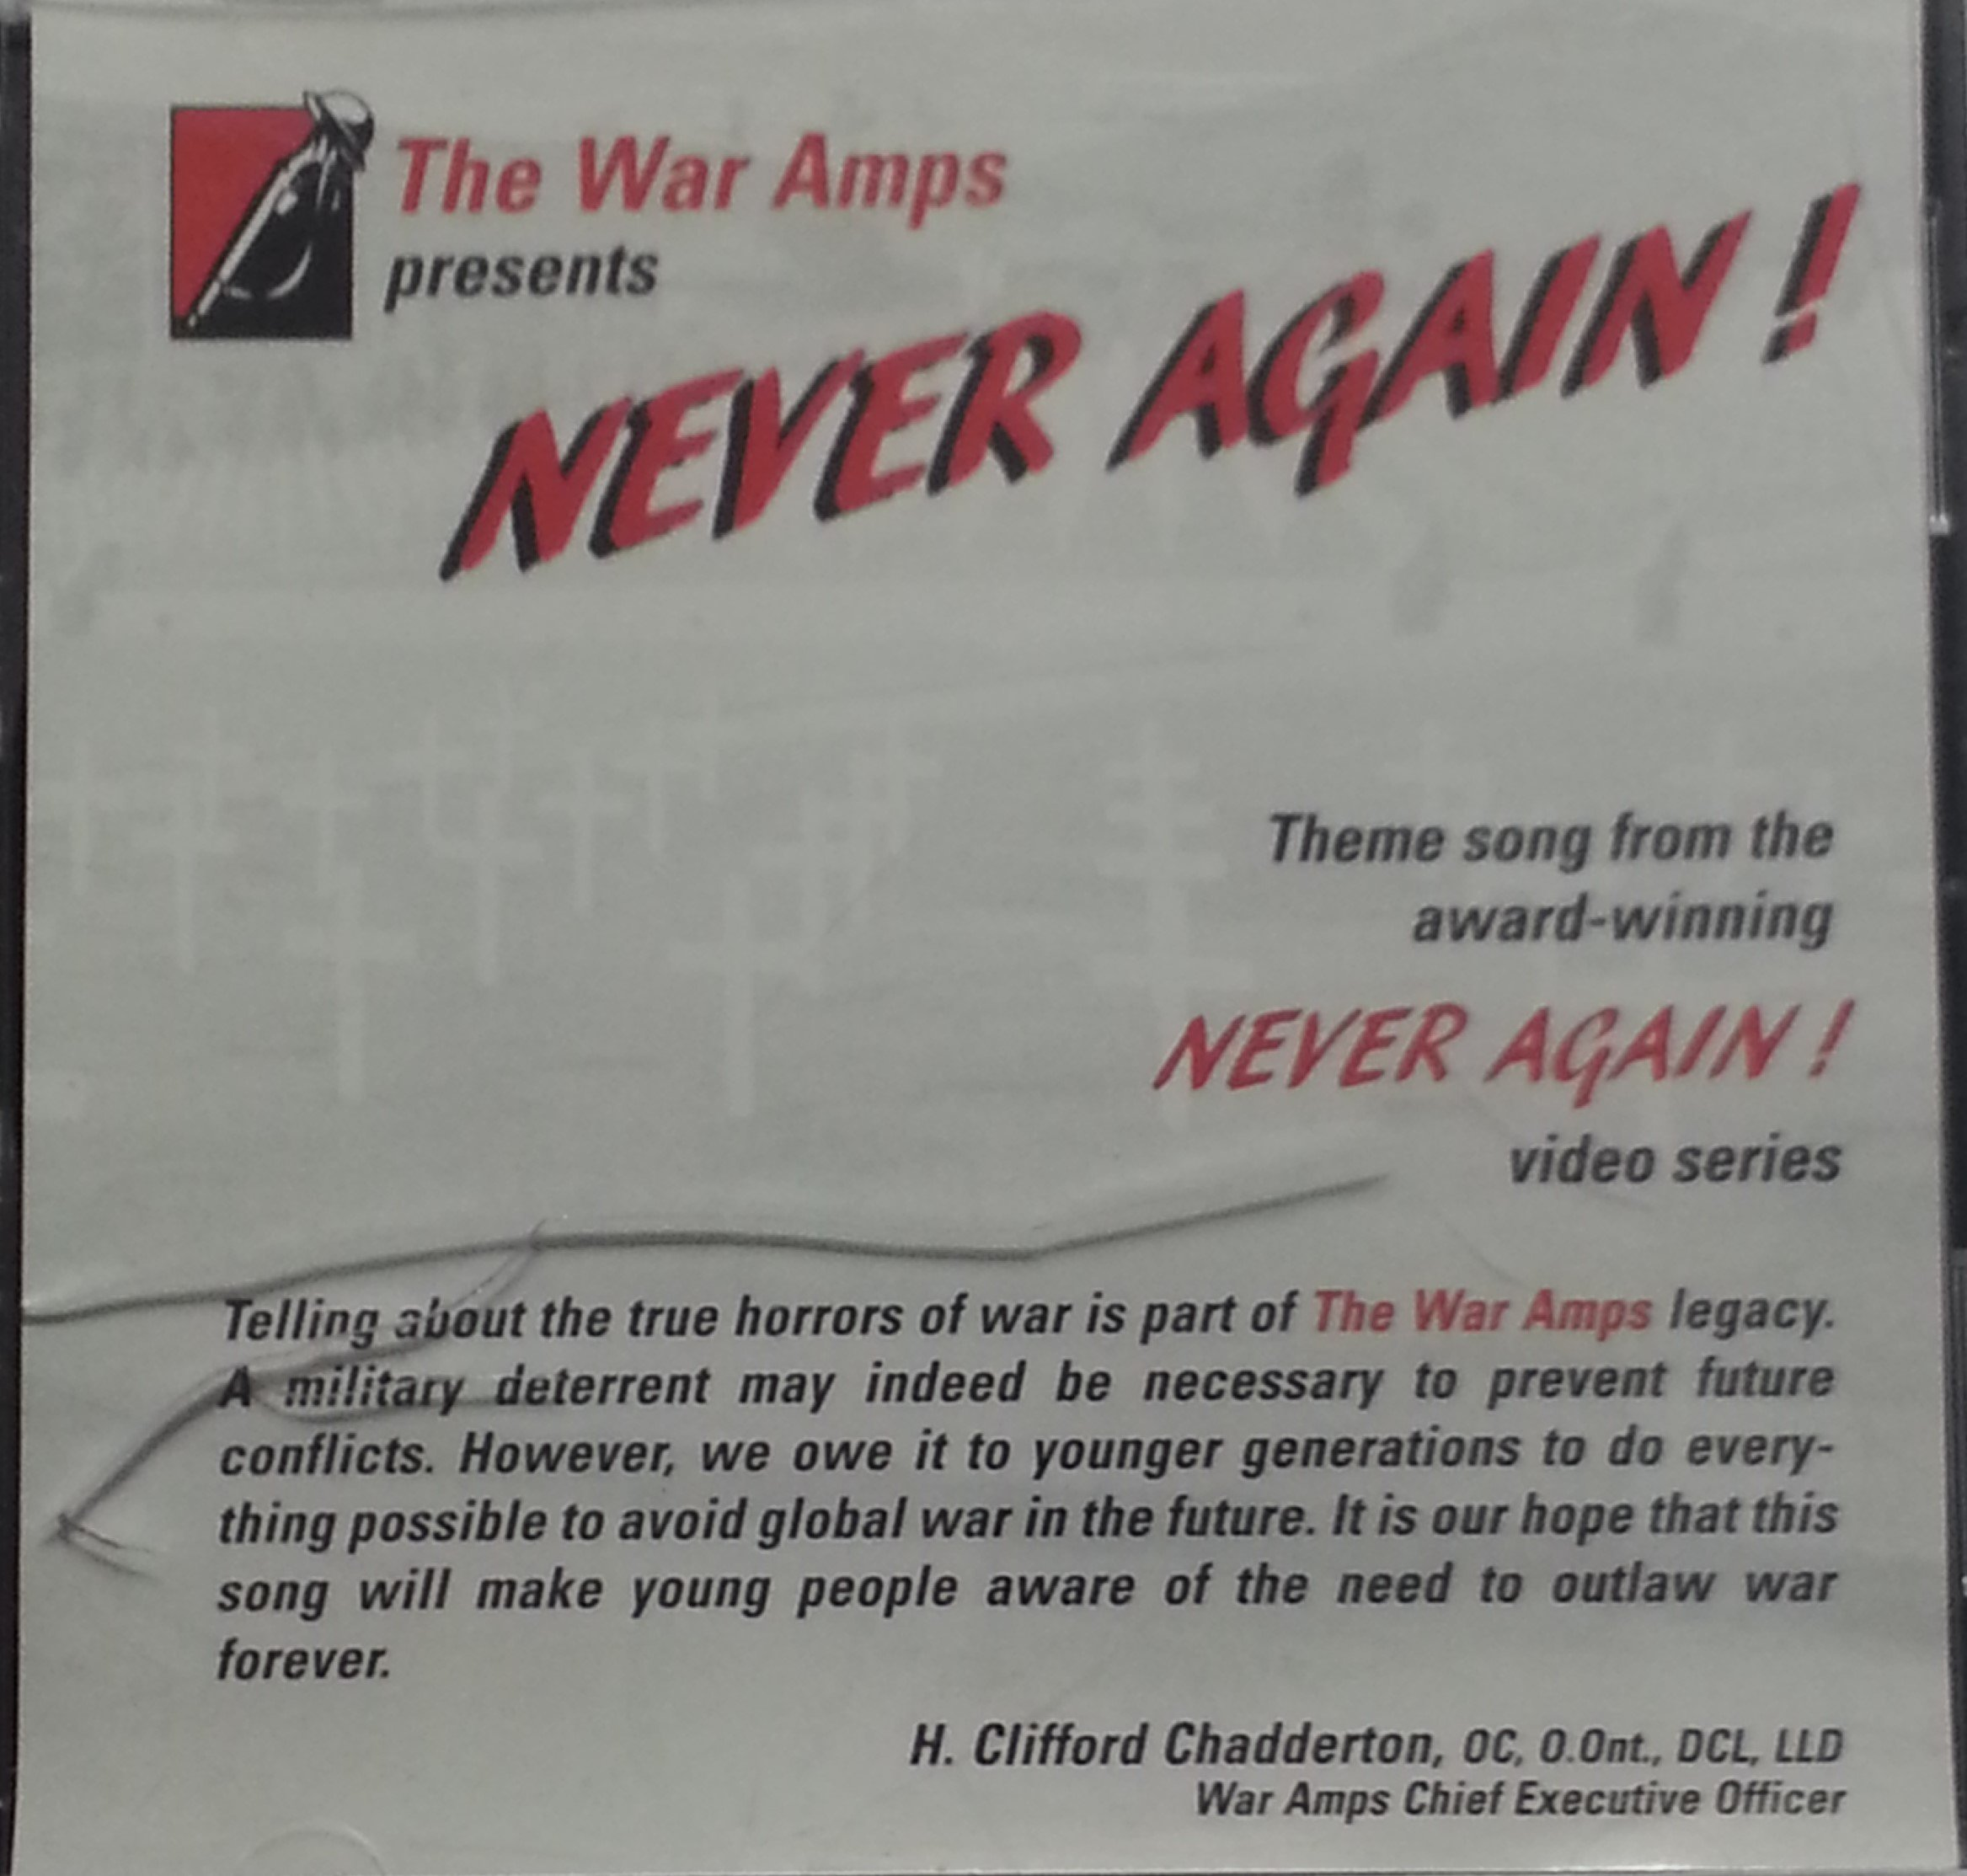 Never Again! The Theme Song from the Award Wining Never Again Video